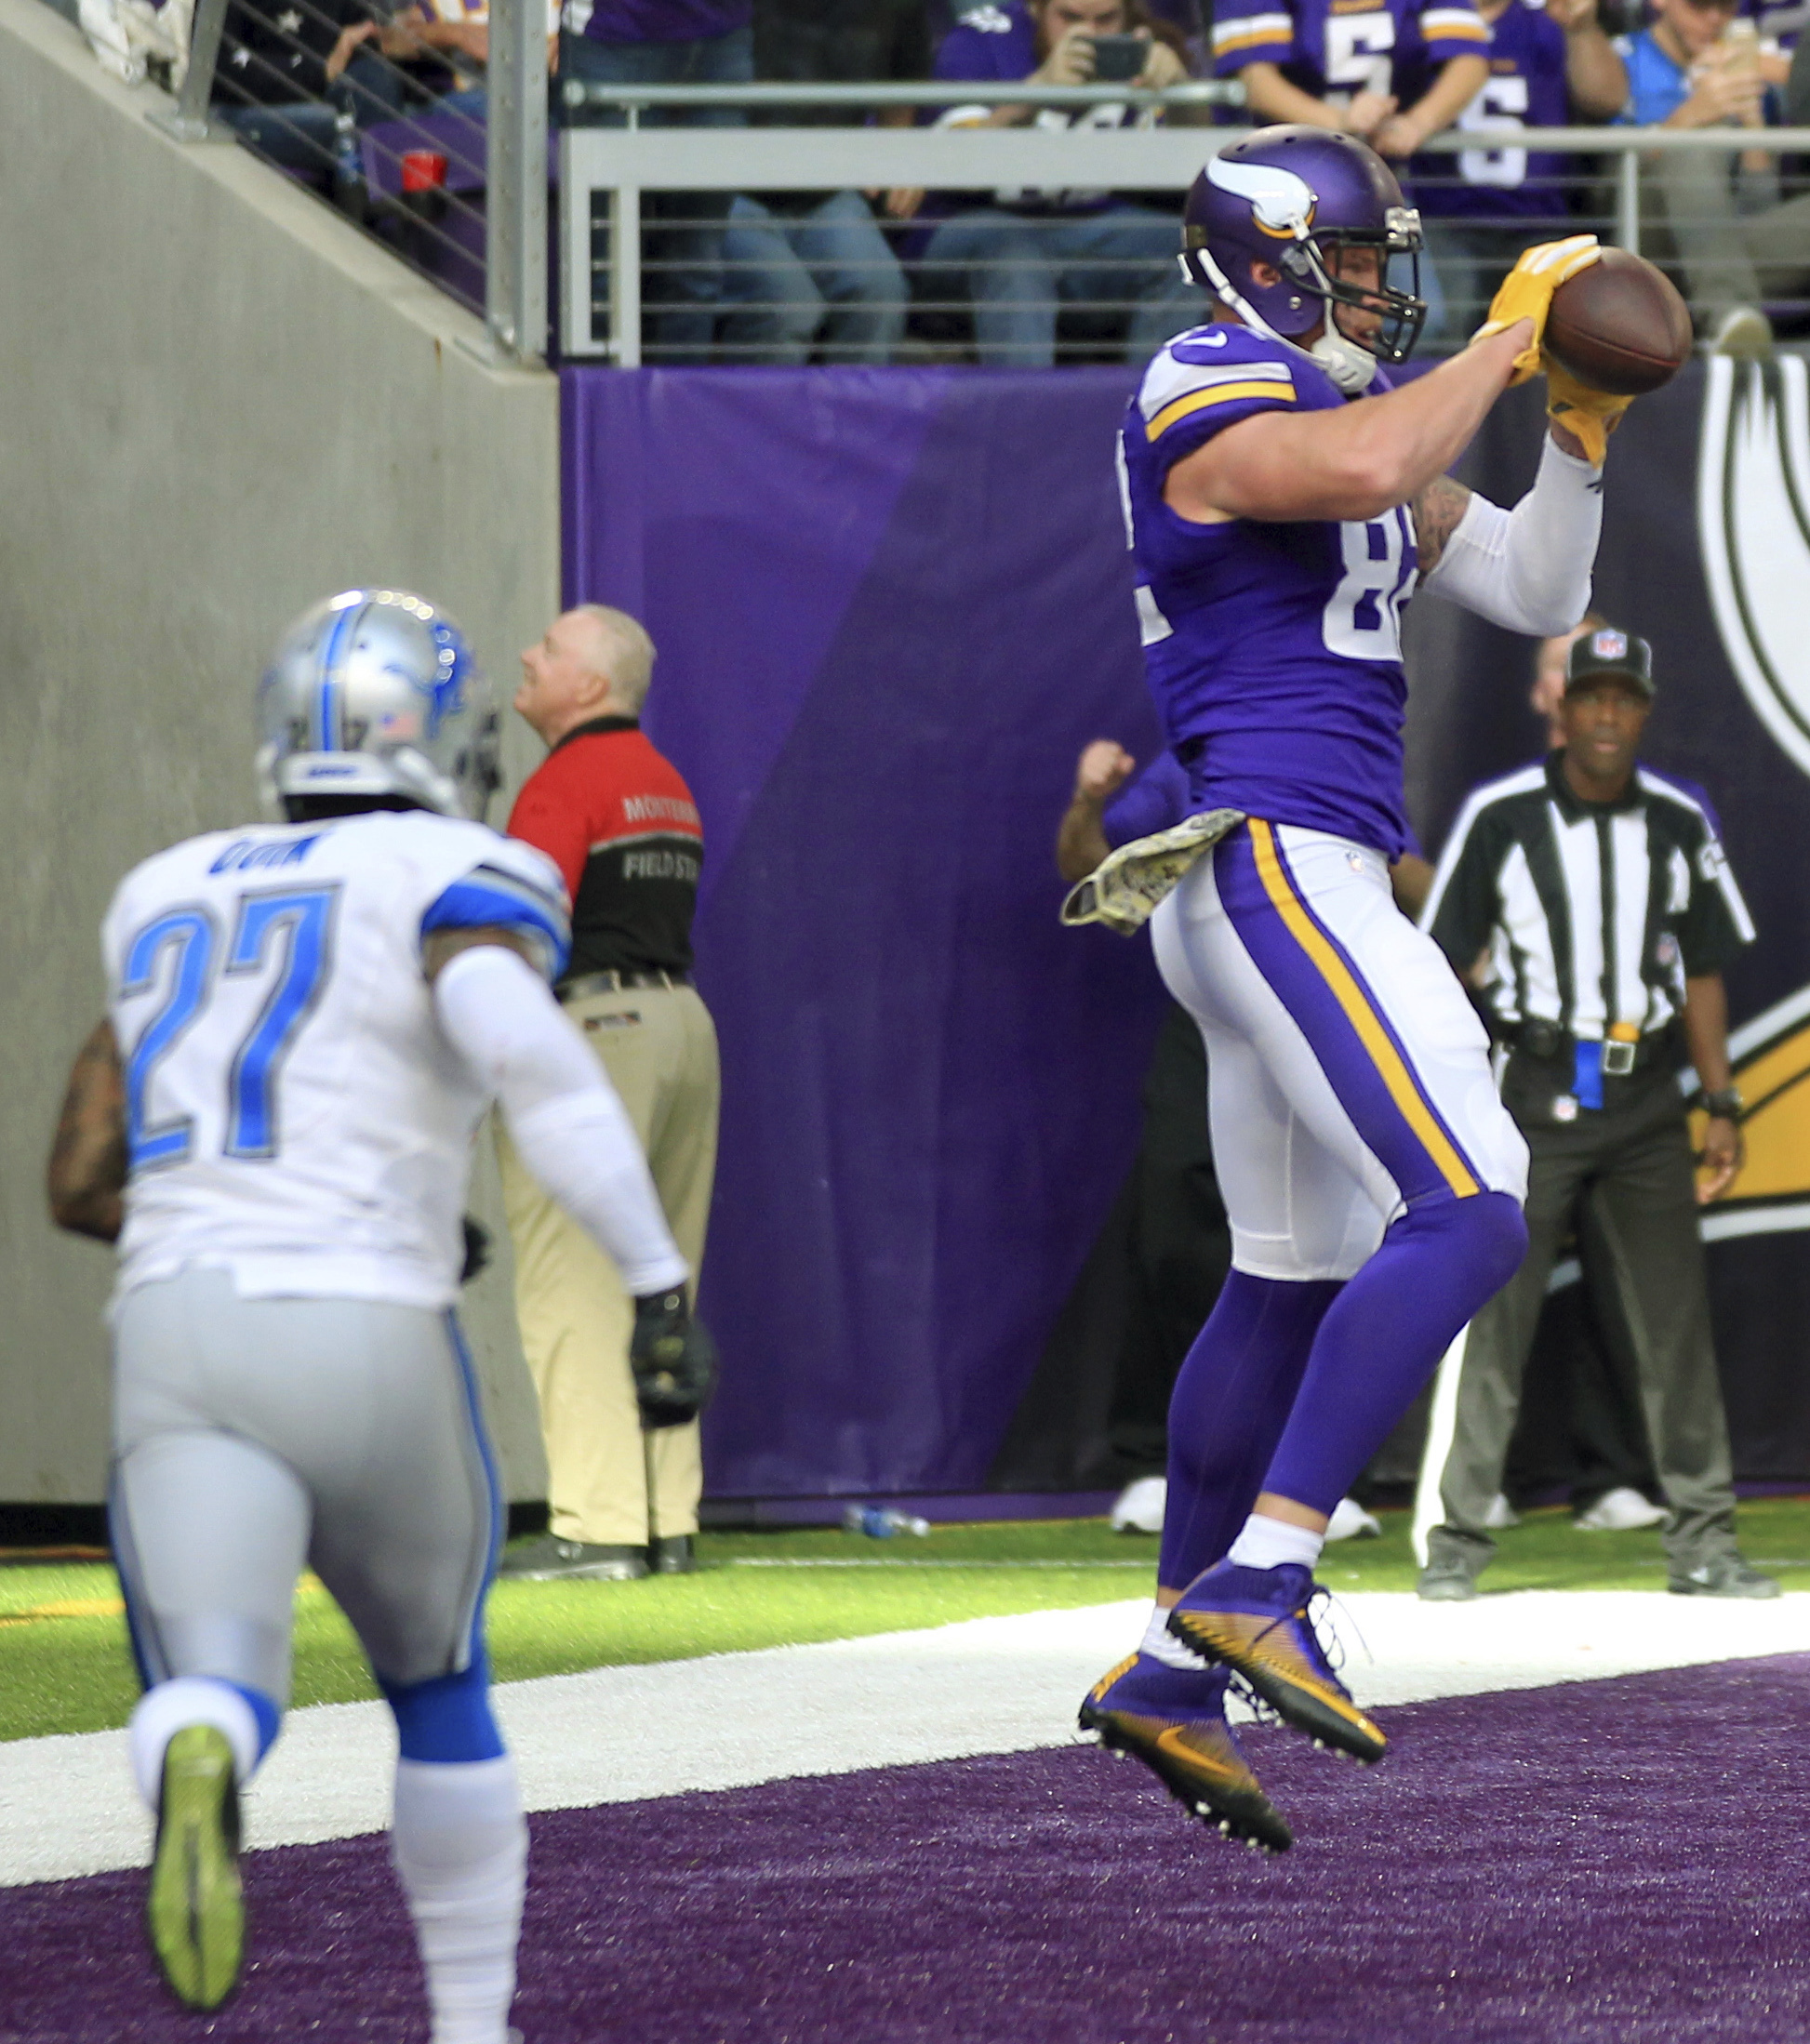 Minnesota Vikings tight end Kyle Rudolph, right, catches a 1-yard touchdown pass over Detroit Lions free safety Glover Quin (27) during the second half of an NFL football game Sunday, Nov. 6, 2016, in Minneapolis. (AP Photo/Andy Clayton-King)